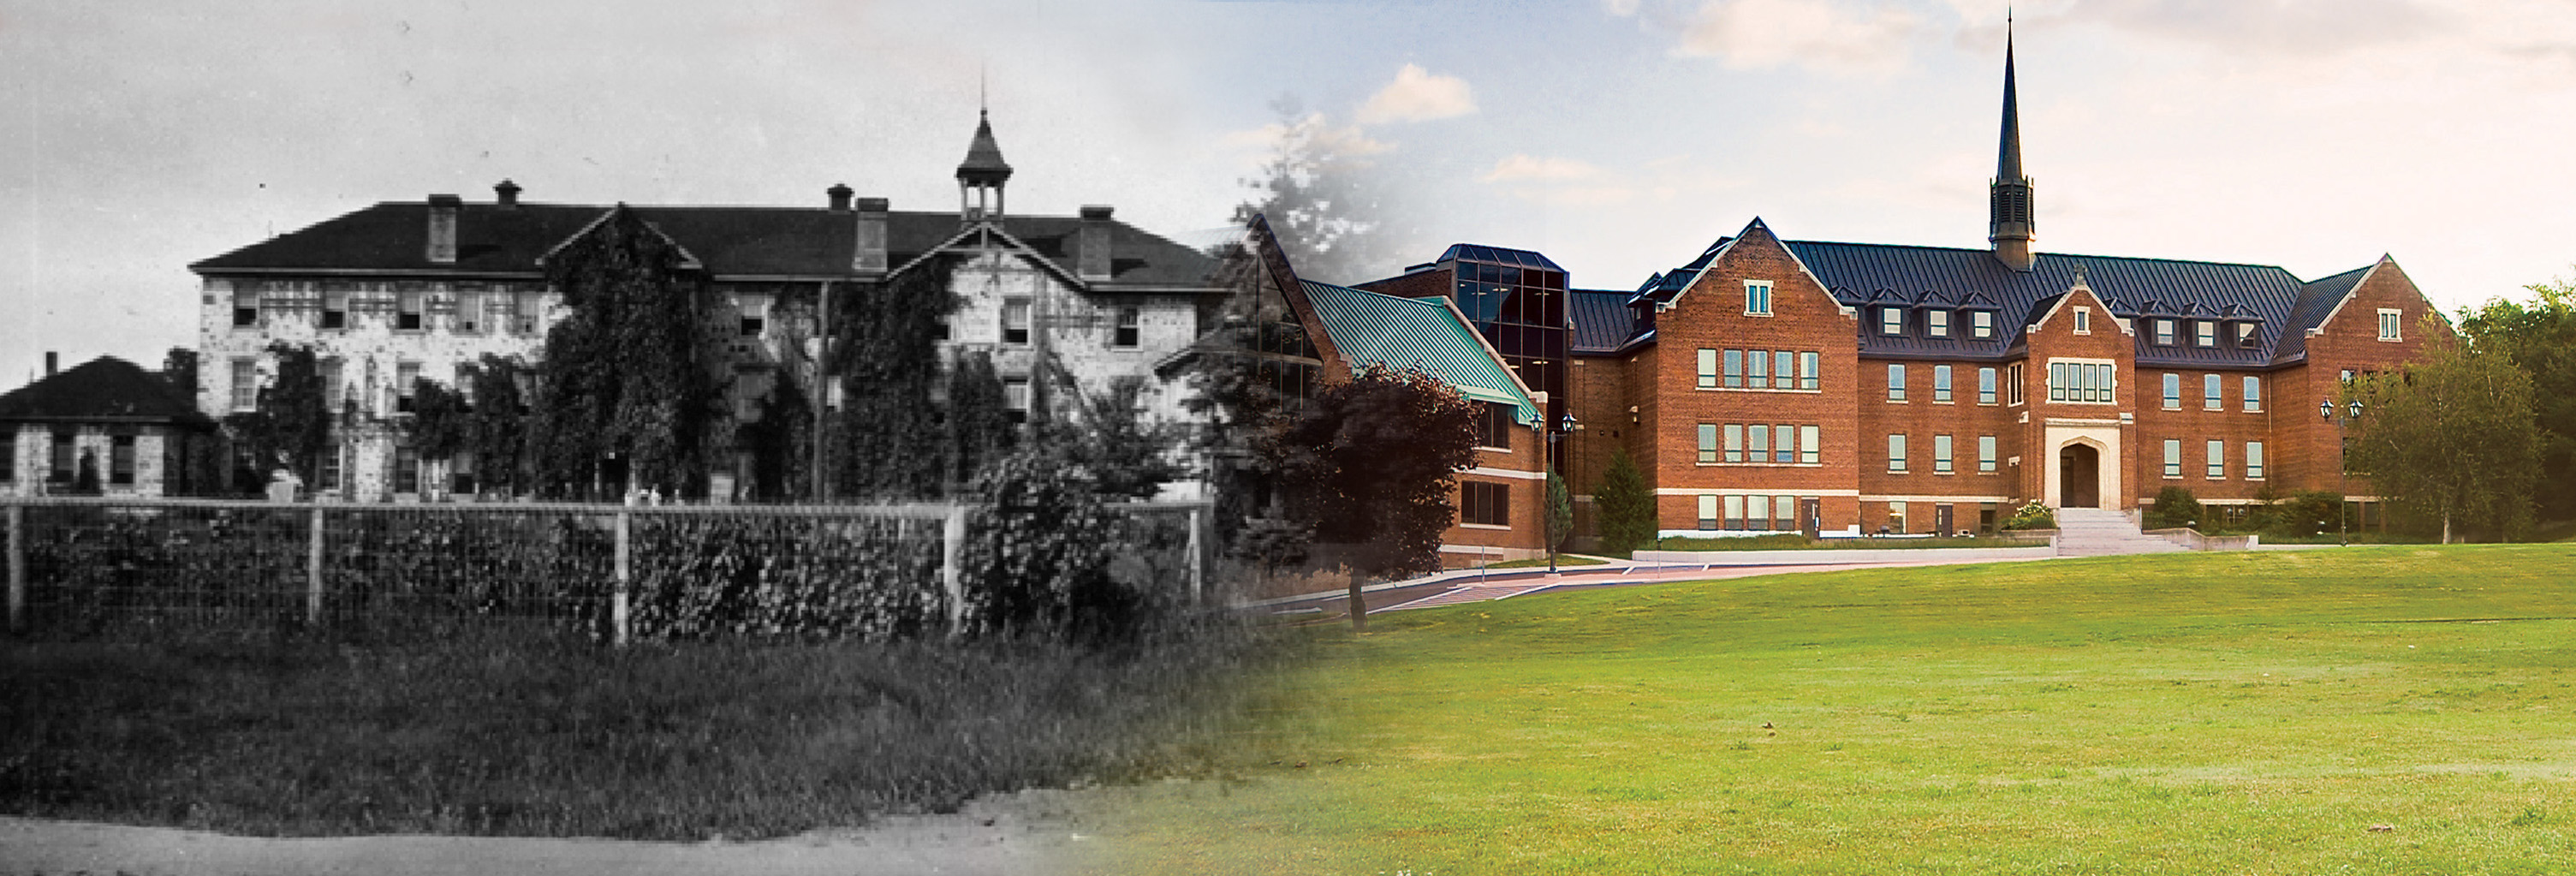 picture of old Shingwauk building compared to new building